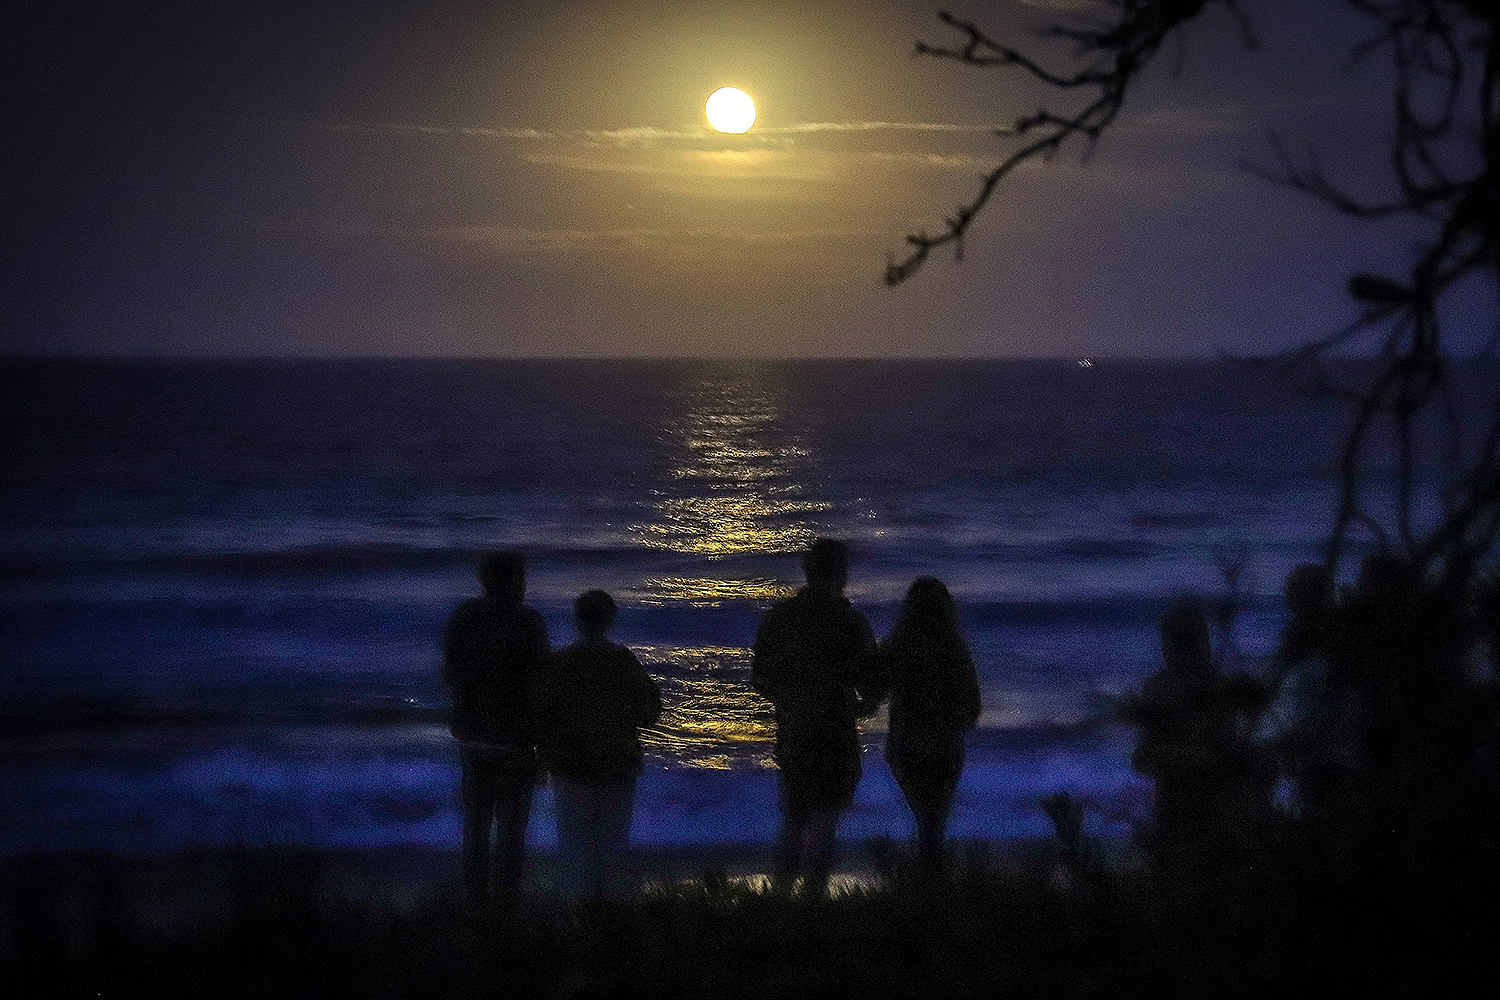 """Spectators gather to watch a full """"strawberry moon"""" rise above the ocean on Narrawallee Beach near Mollymook, Australia, on June 6. DAVID GRAY/AFP via Getty Images"""